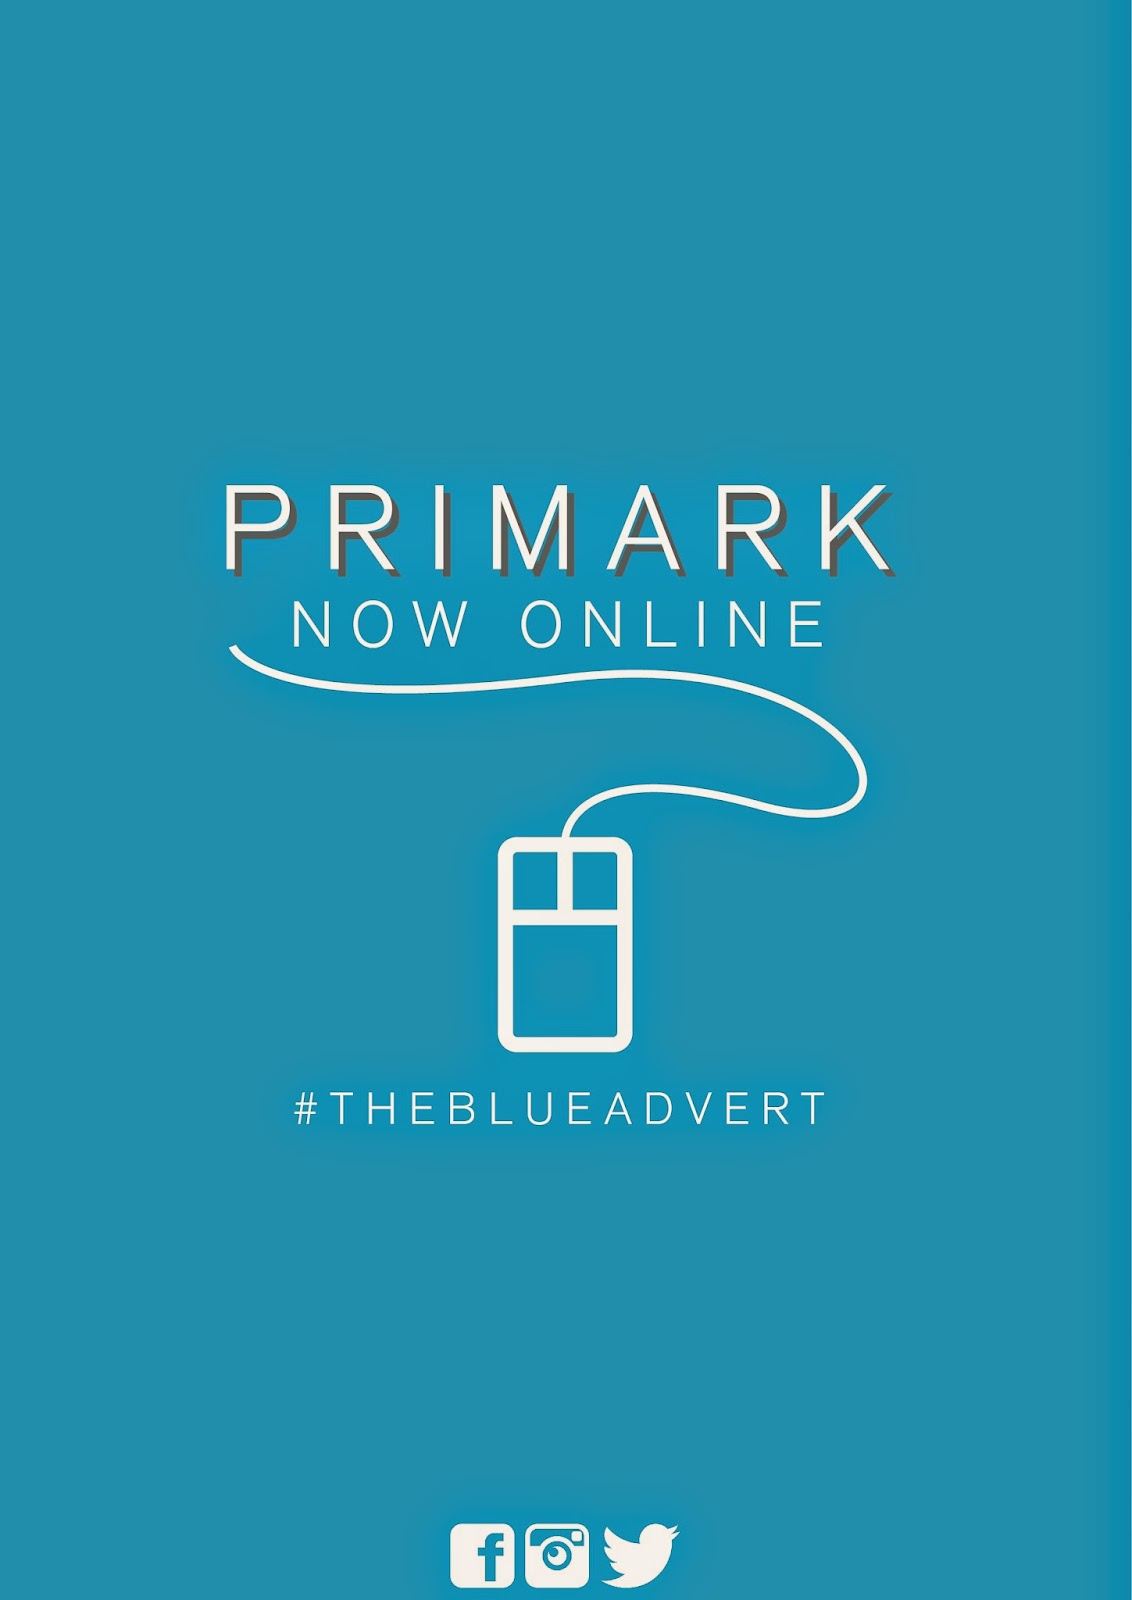 marketing strategy primark Read this essay on primark marketing it will use relevant marketing theories and strategies, which may help primark to reposition itself to be more competitive.